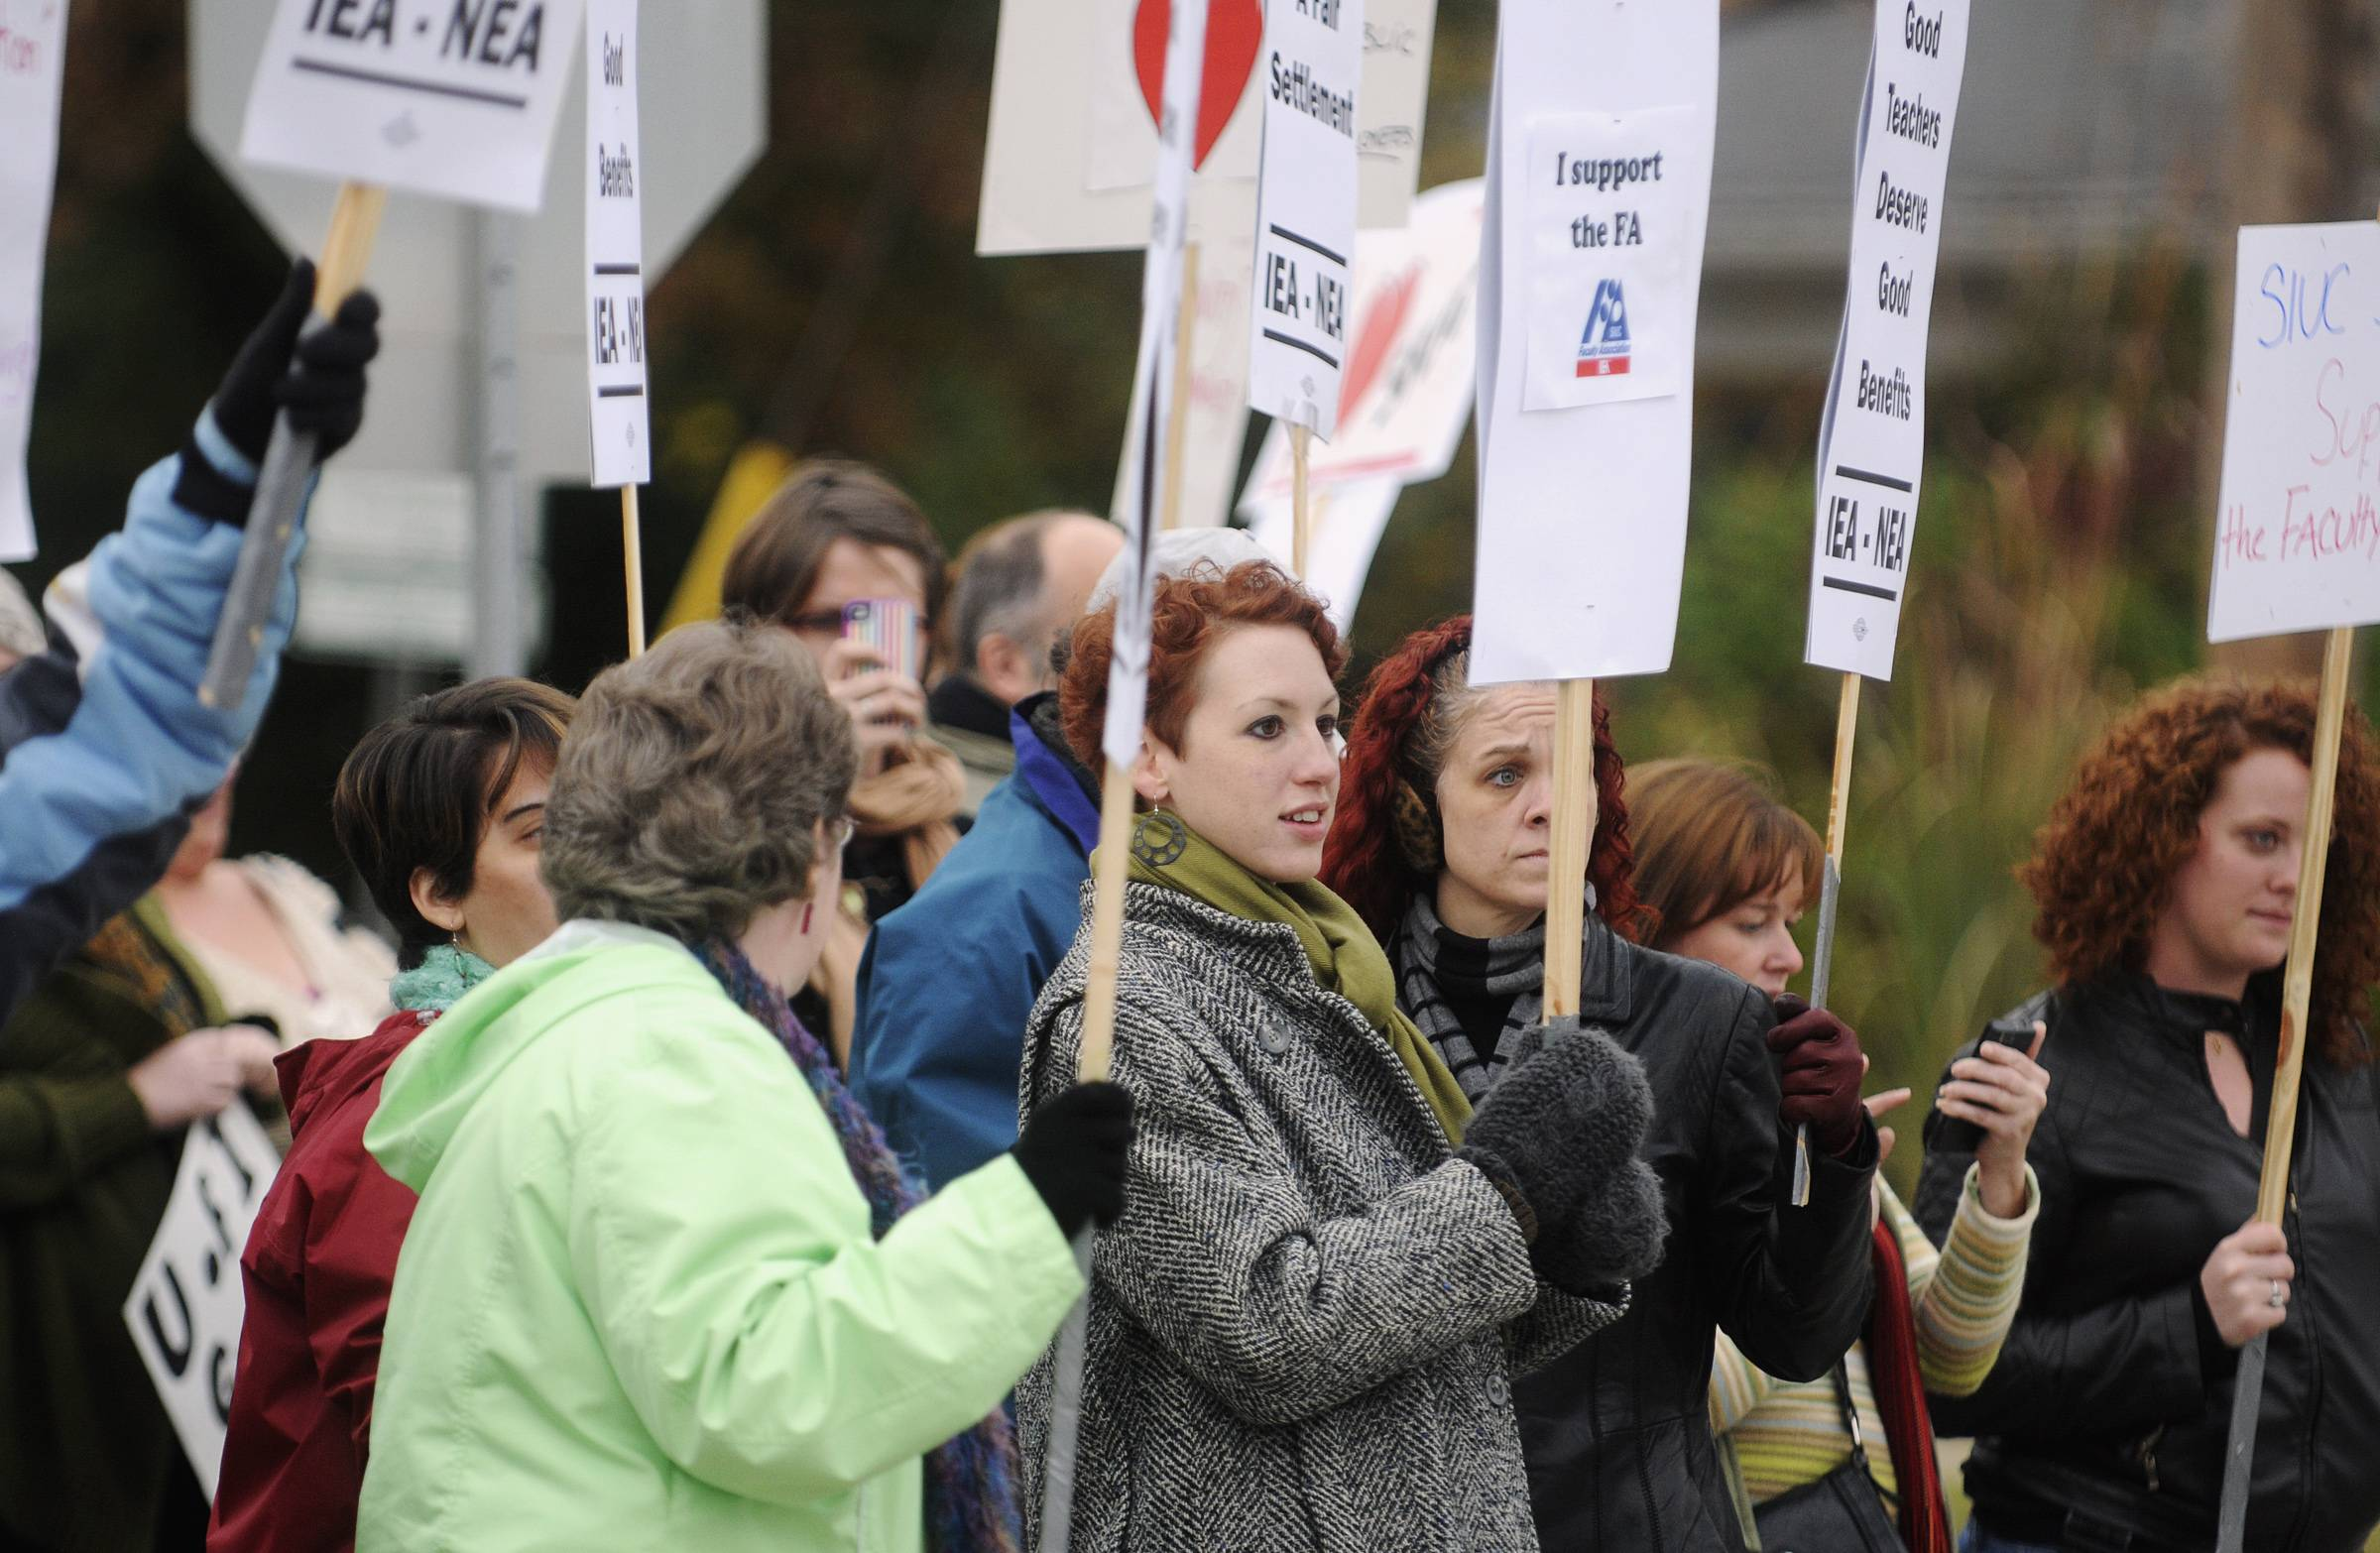 Southern Illinois University Faculty Association members and supporters picket on Nov. 4, 2011, in Carbondale.